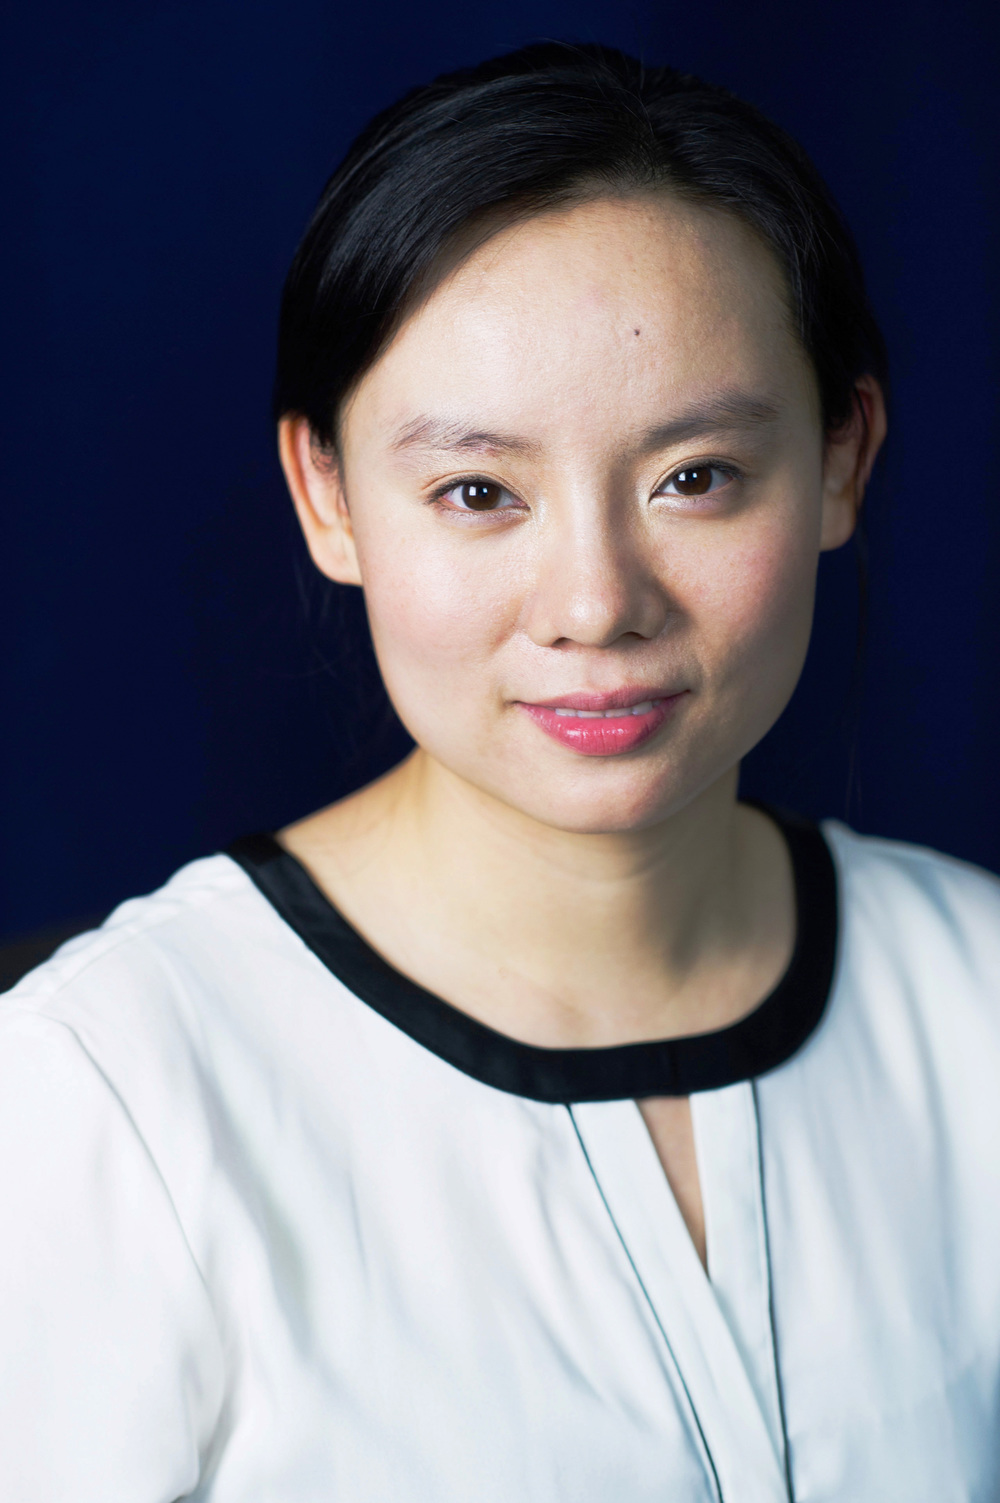 Wanting Zhang, co-founder: Wanting grew up in Beijing, received a BA at Peking University, an LLM at the Boston University School of Law, and then an MESc at the Yale School of Forestry & Environmental Studies.